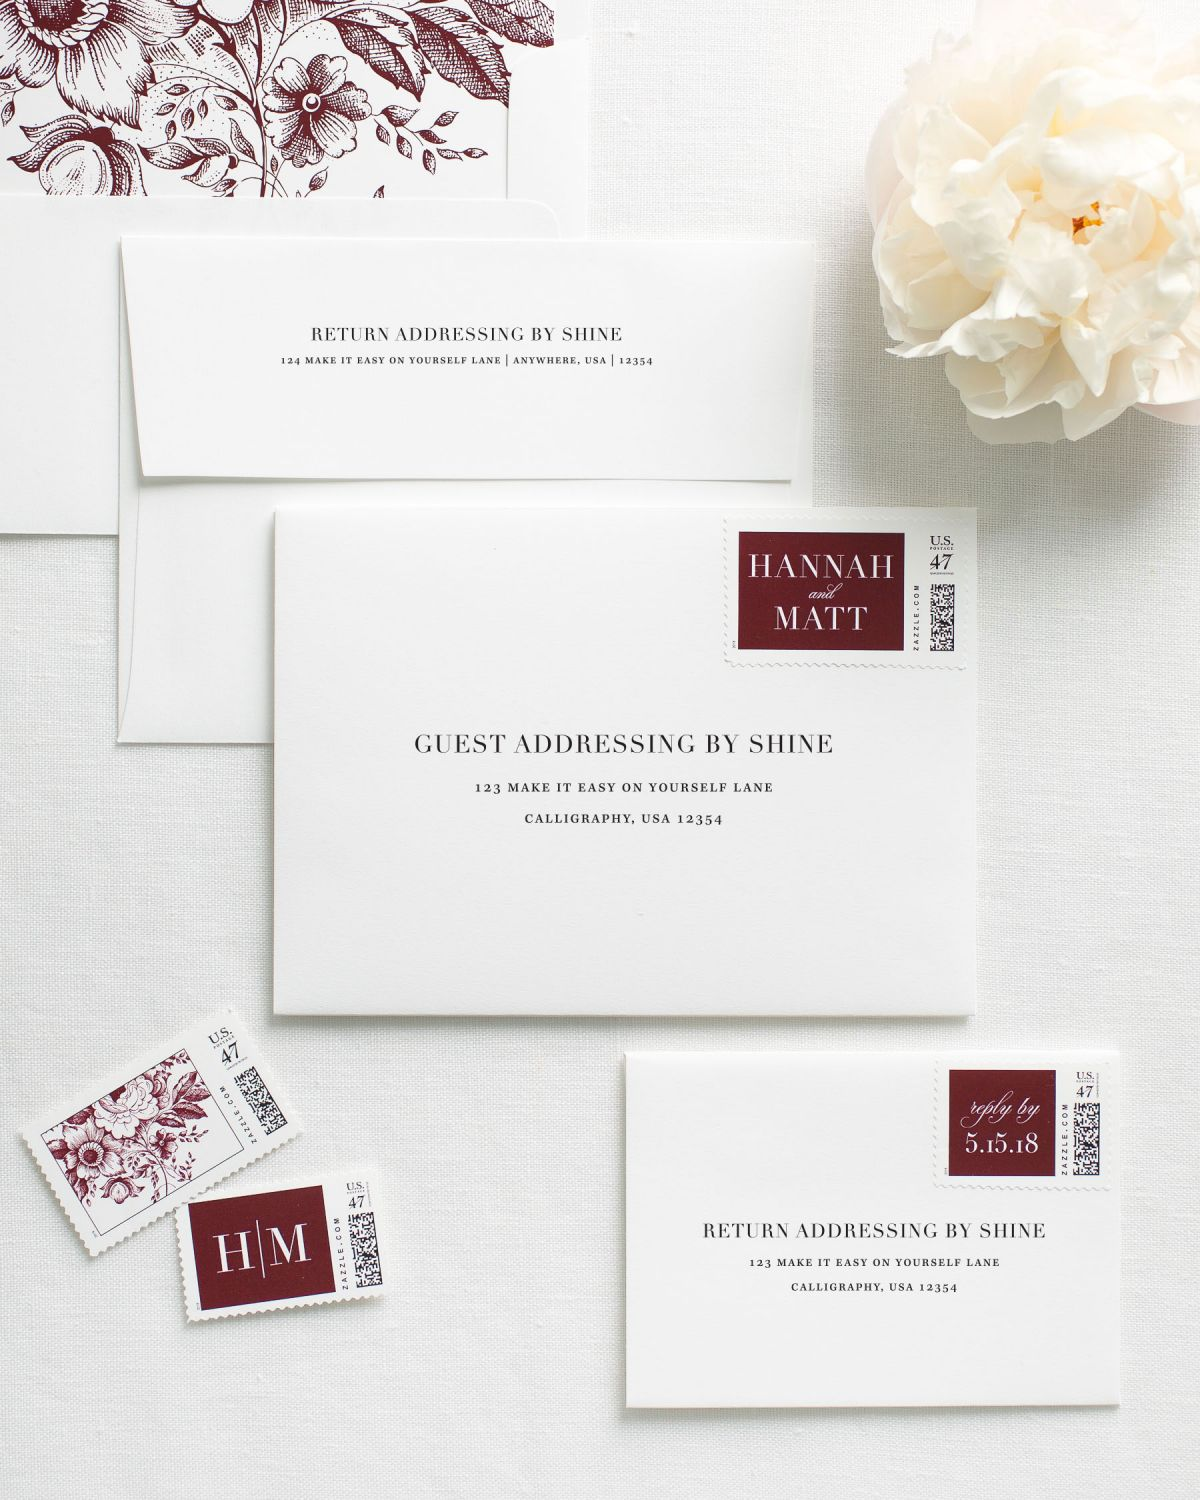 Guest Addressed Envelopes with Custom Stamps